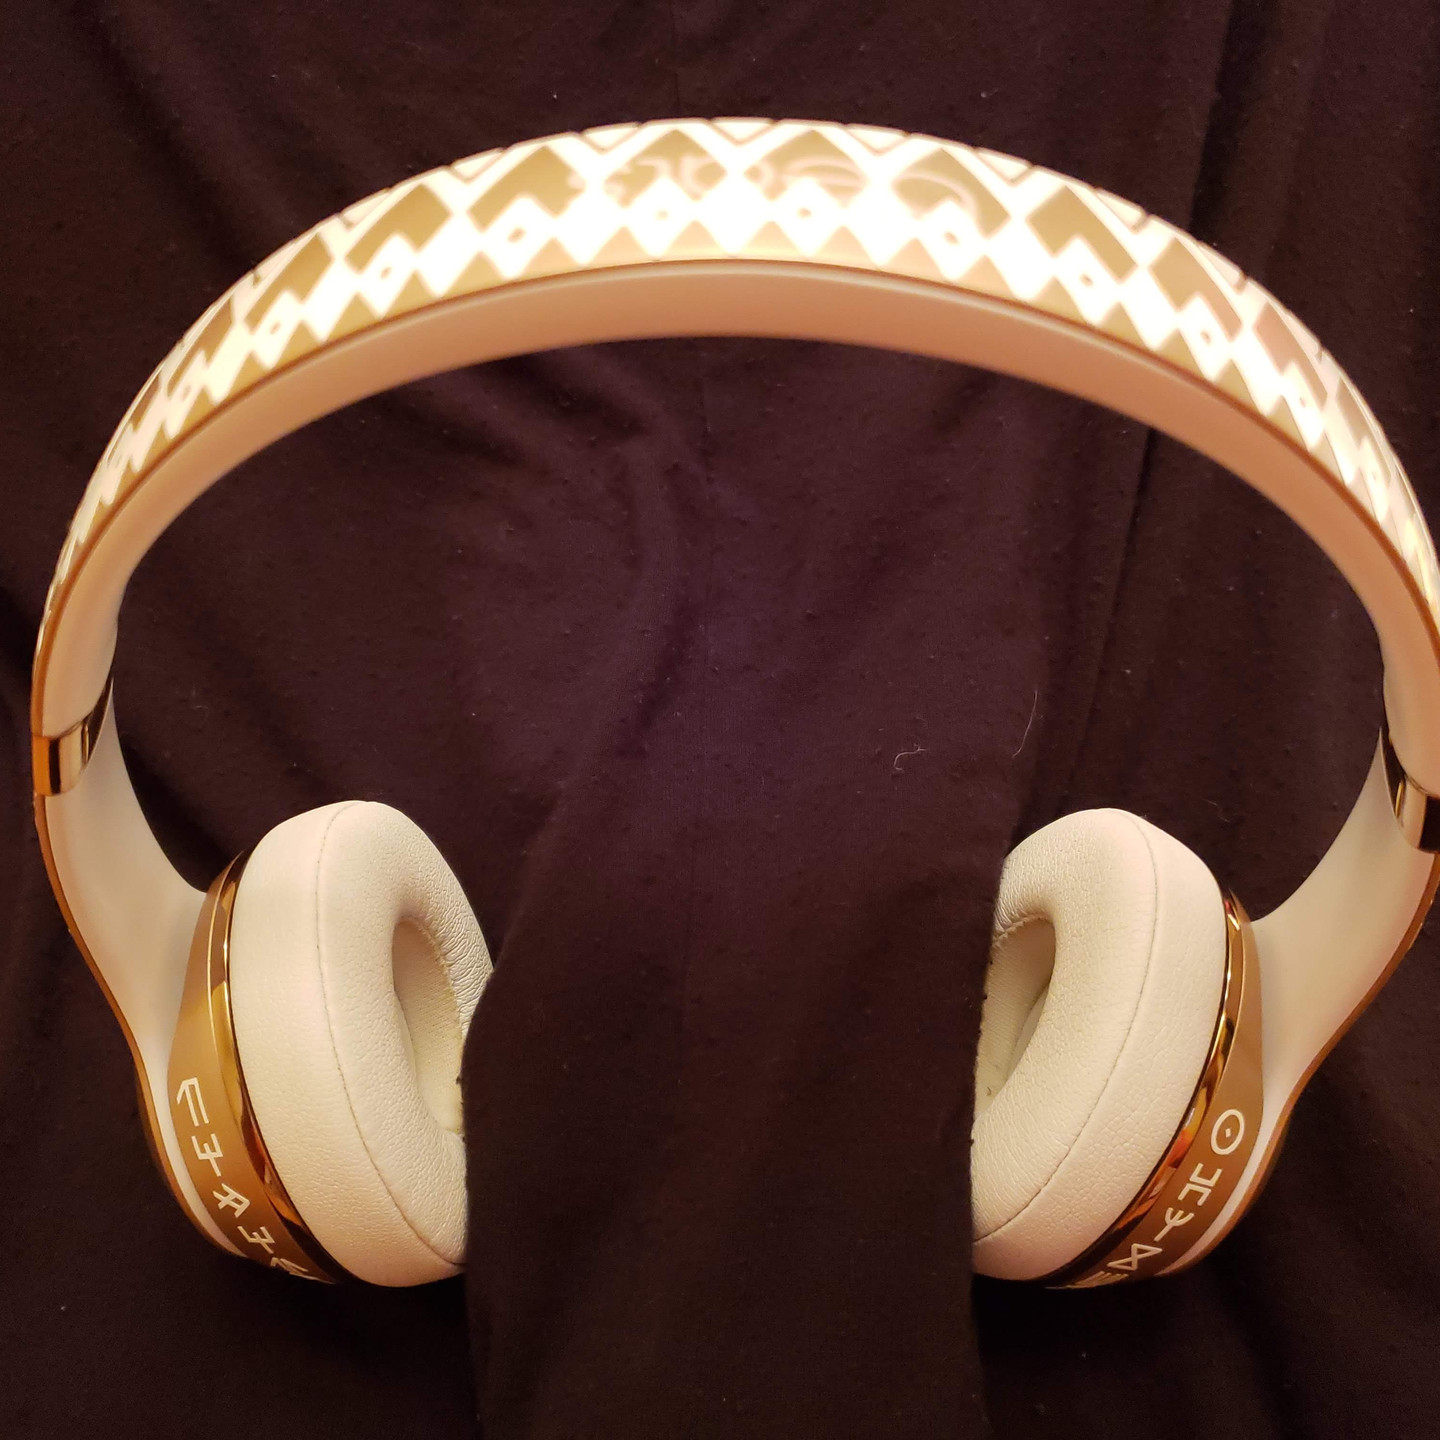 Beats by Dre Solo3, vinyl, Wakanda, African, Headphone, Cricut, Shuri, Dora Milaje, Gold, Black Panther, White, Music, vibranium, Marvel Cinematic Universe, Comics, MCU, Cricut Design Space, Crafting Intrigue, @CallHimIntrigue, blerd